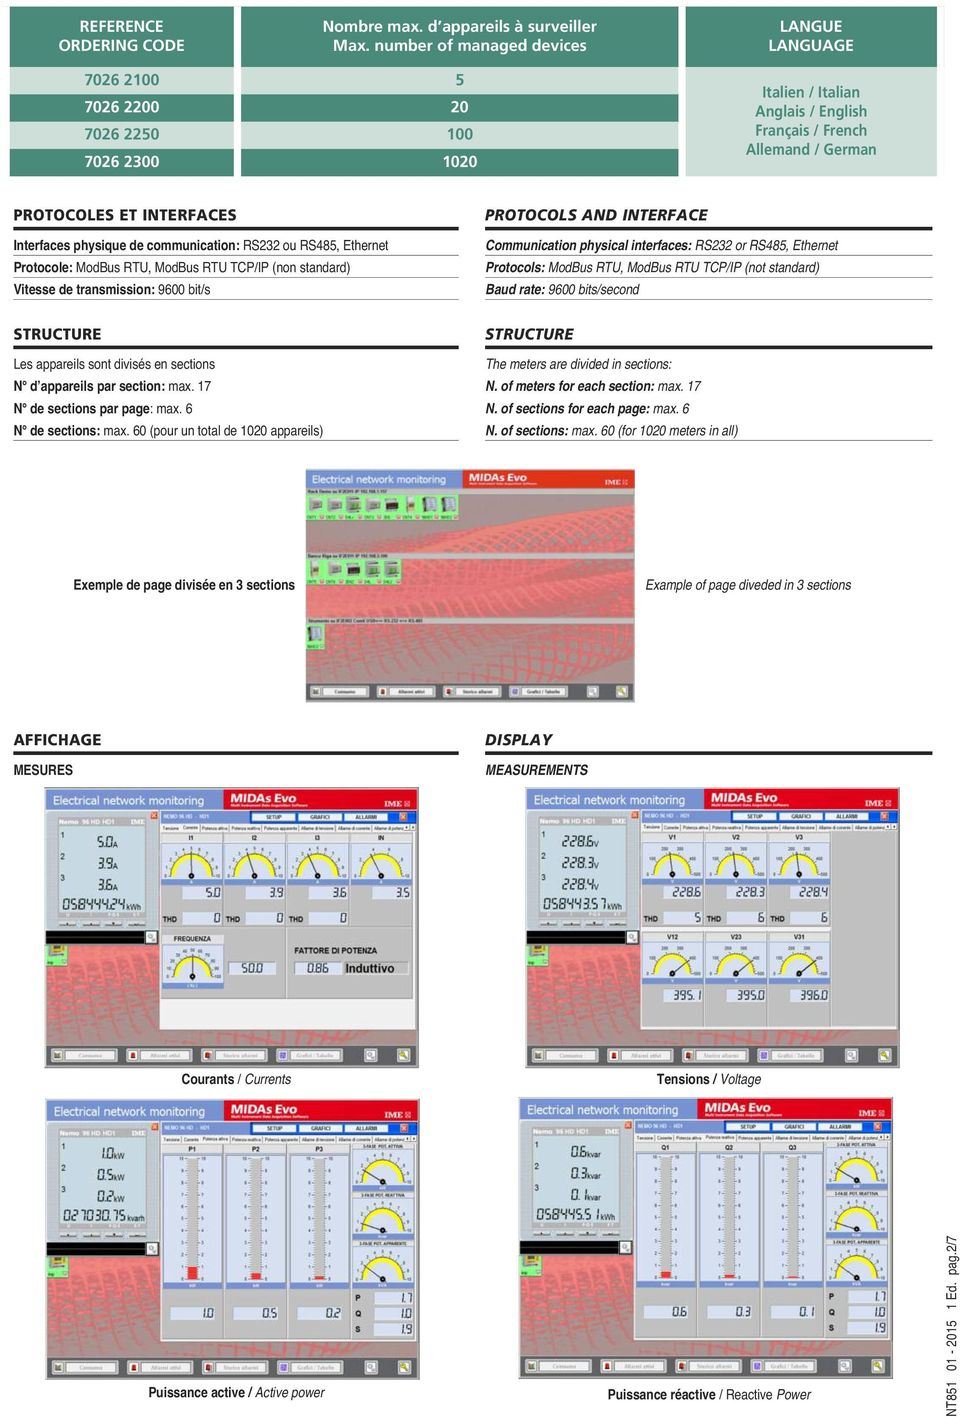 Interfaces physique de communication: RS232 ou RS485, Ethernet Protocole: ModBus RTU, ModBus RTU TCP/IP (non standard) Vitesse de transmission: 9600 bit/s PROTOCOLS AND INTERFACE Communication